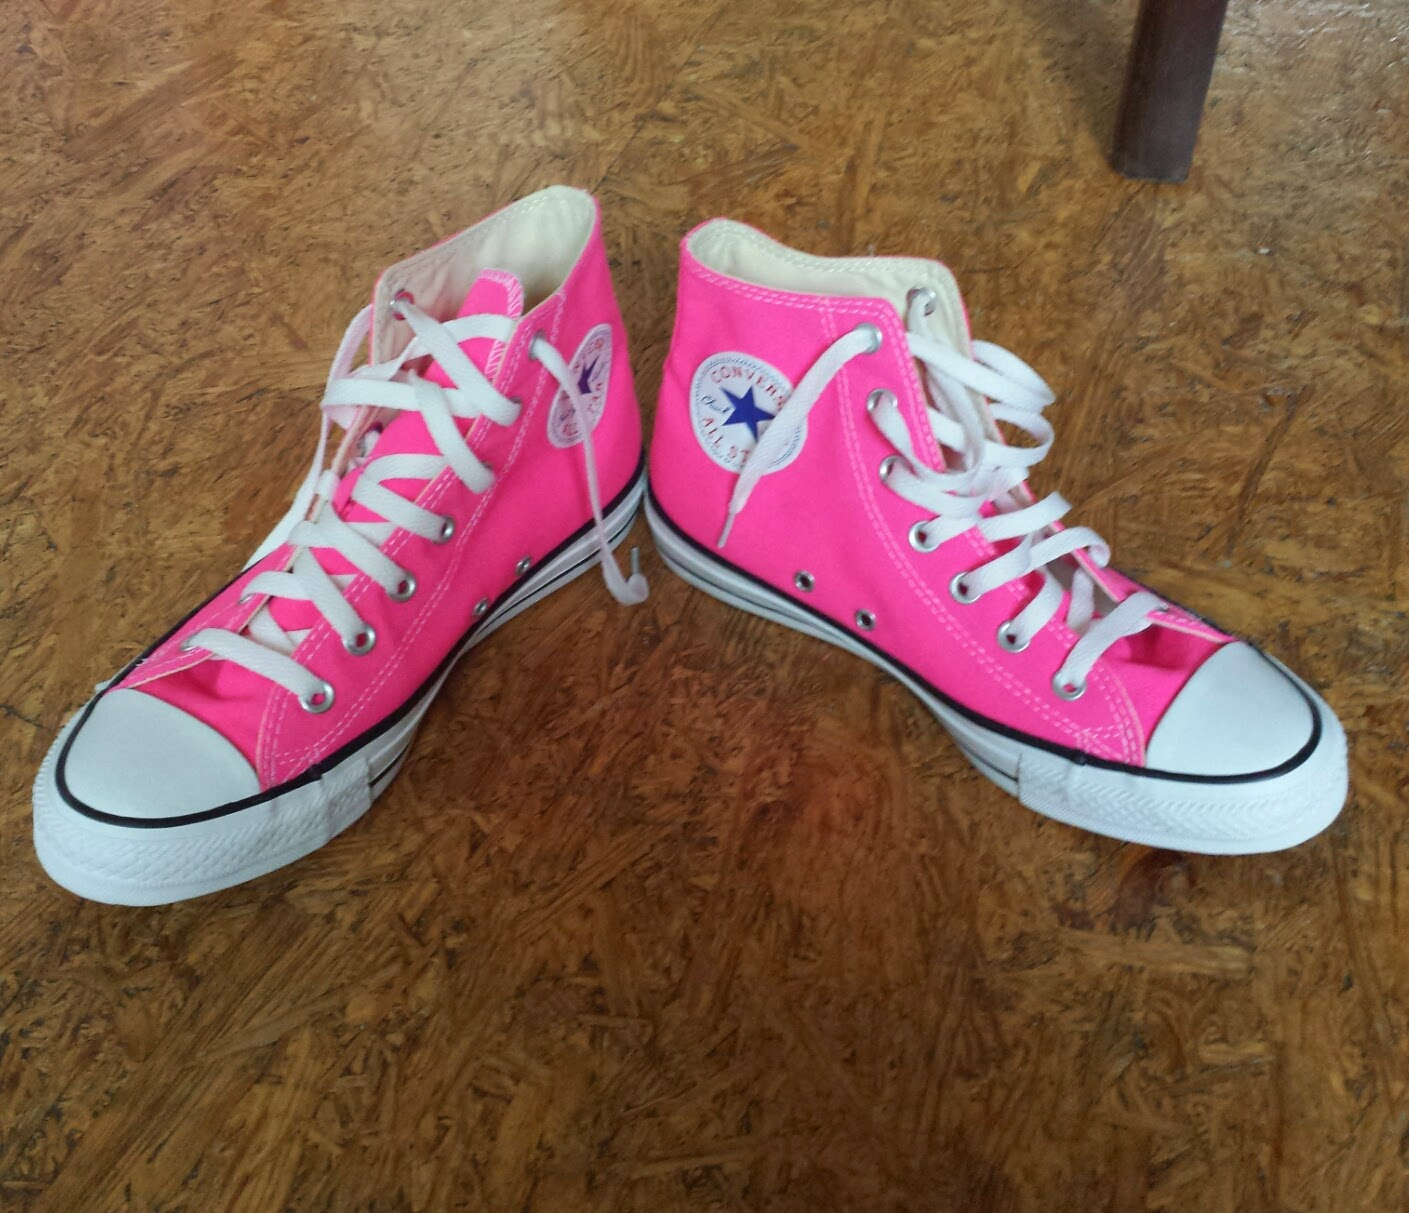 Pink Chucks von Converse, All Stars